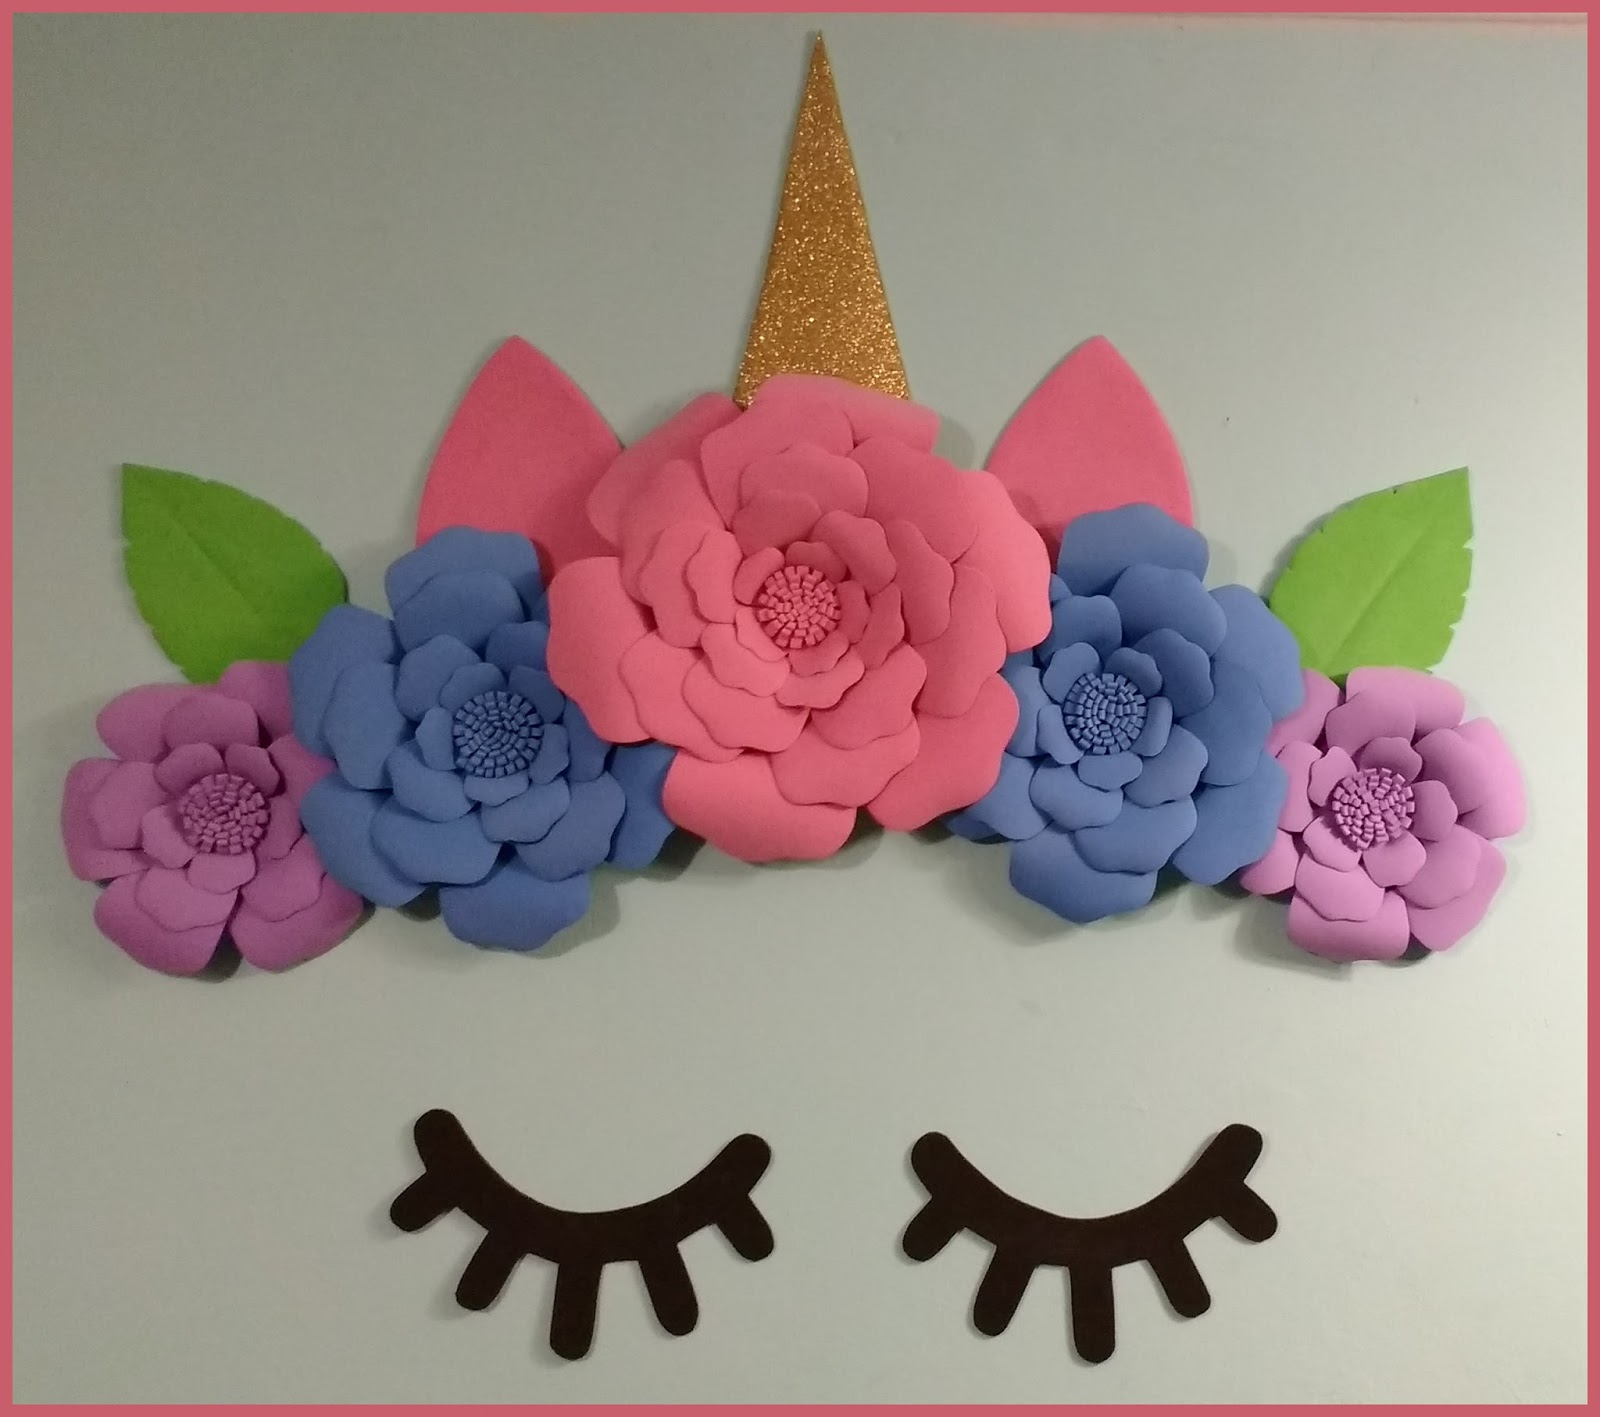 onaily unicornio decoracion para pared